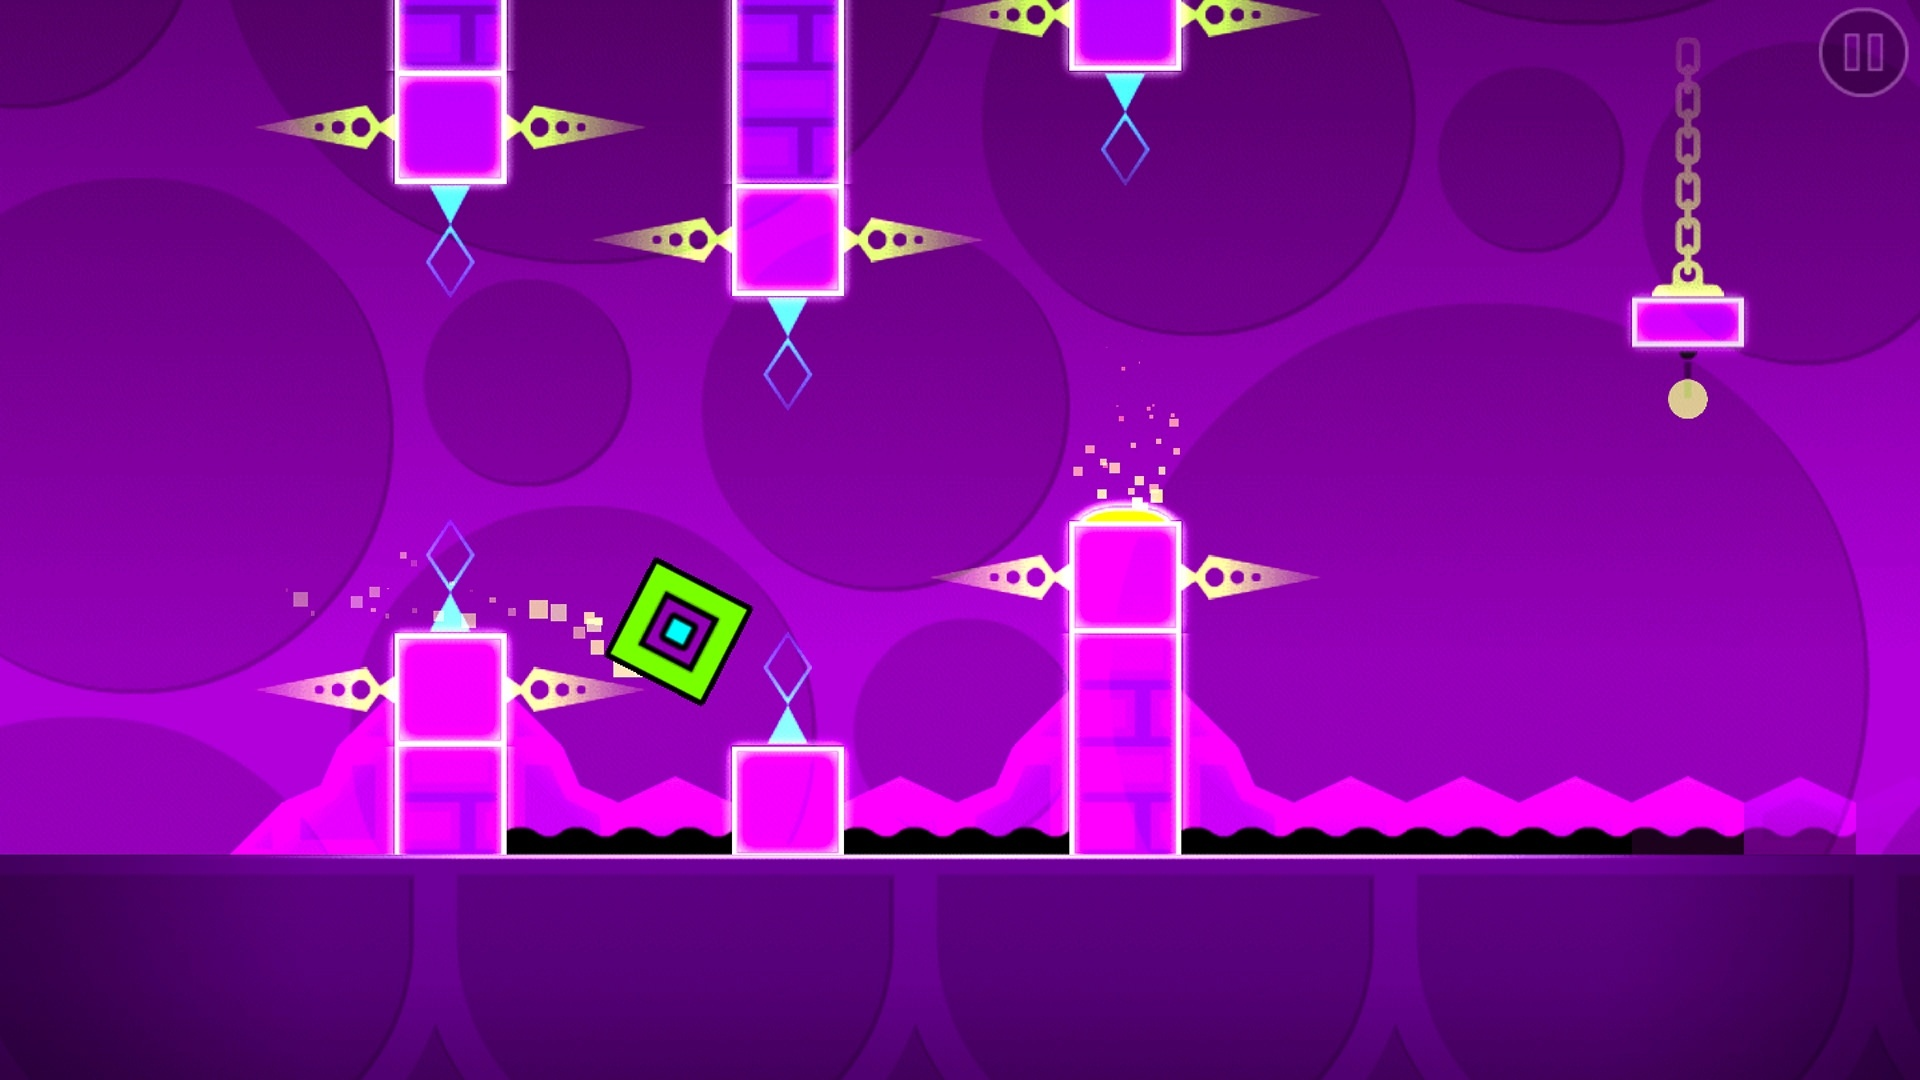 geometry dash scratch wallpapers fun facts about gd lovelytab geometry dash scratch wallpapers fun